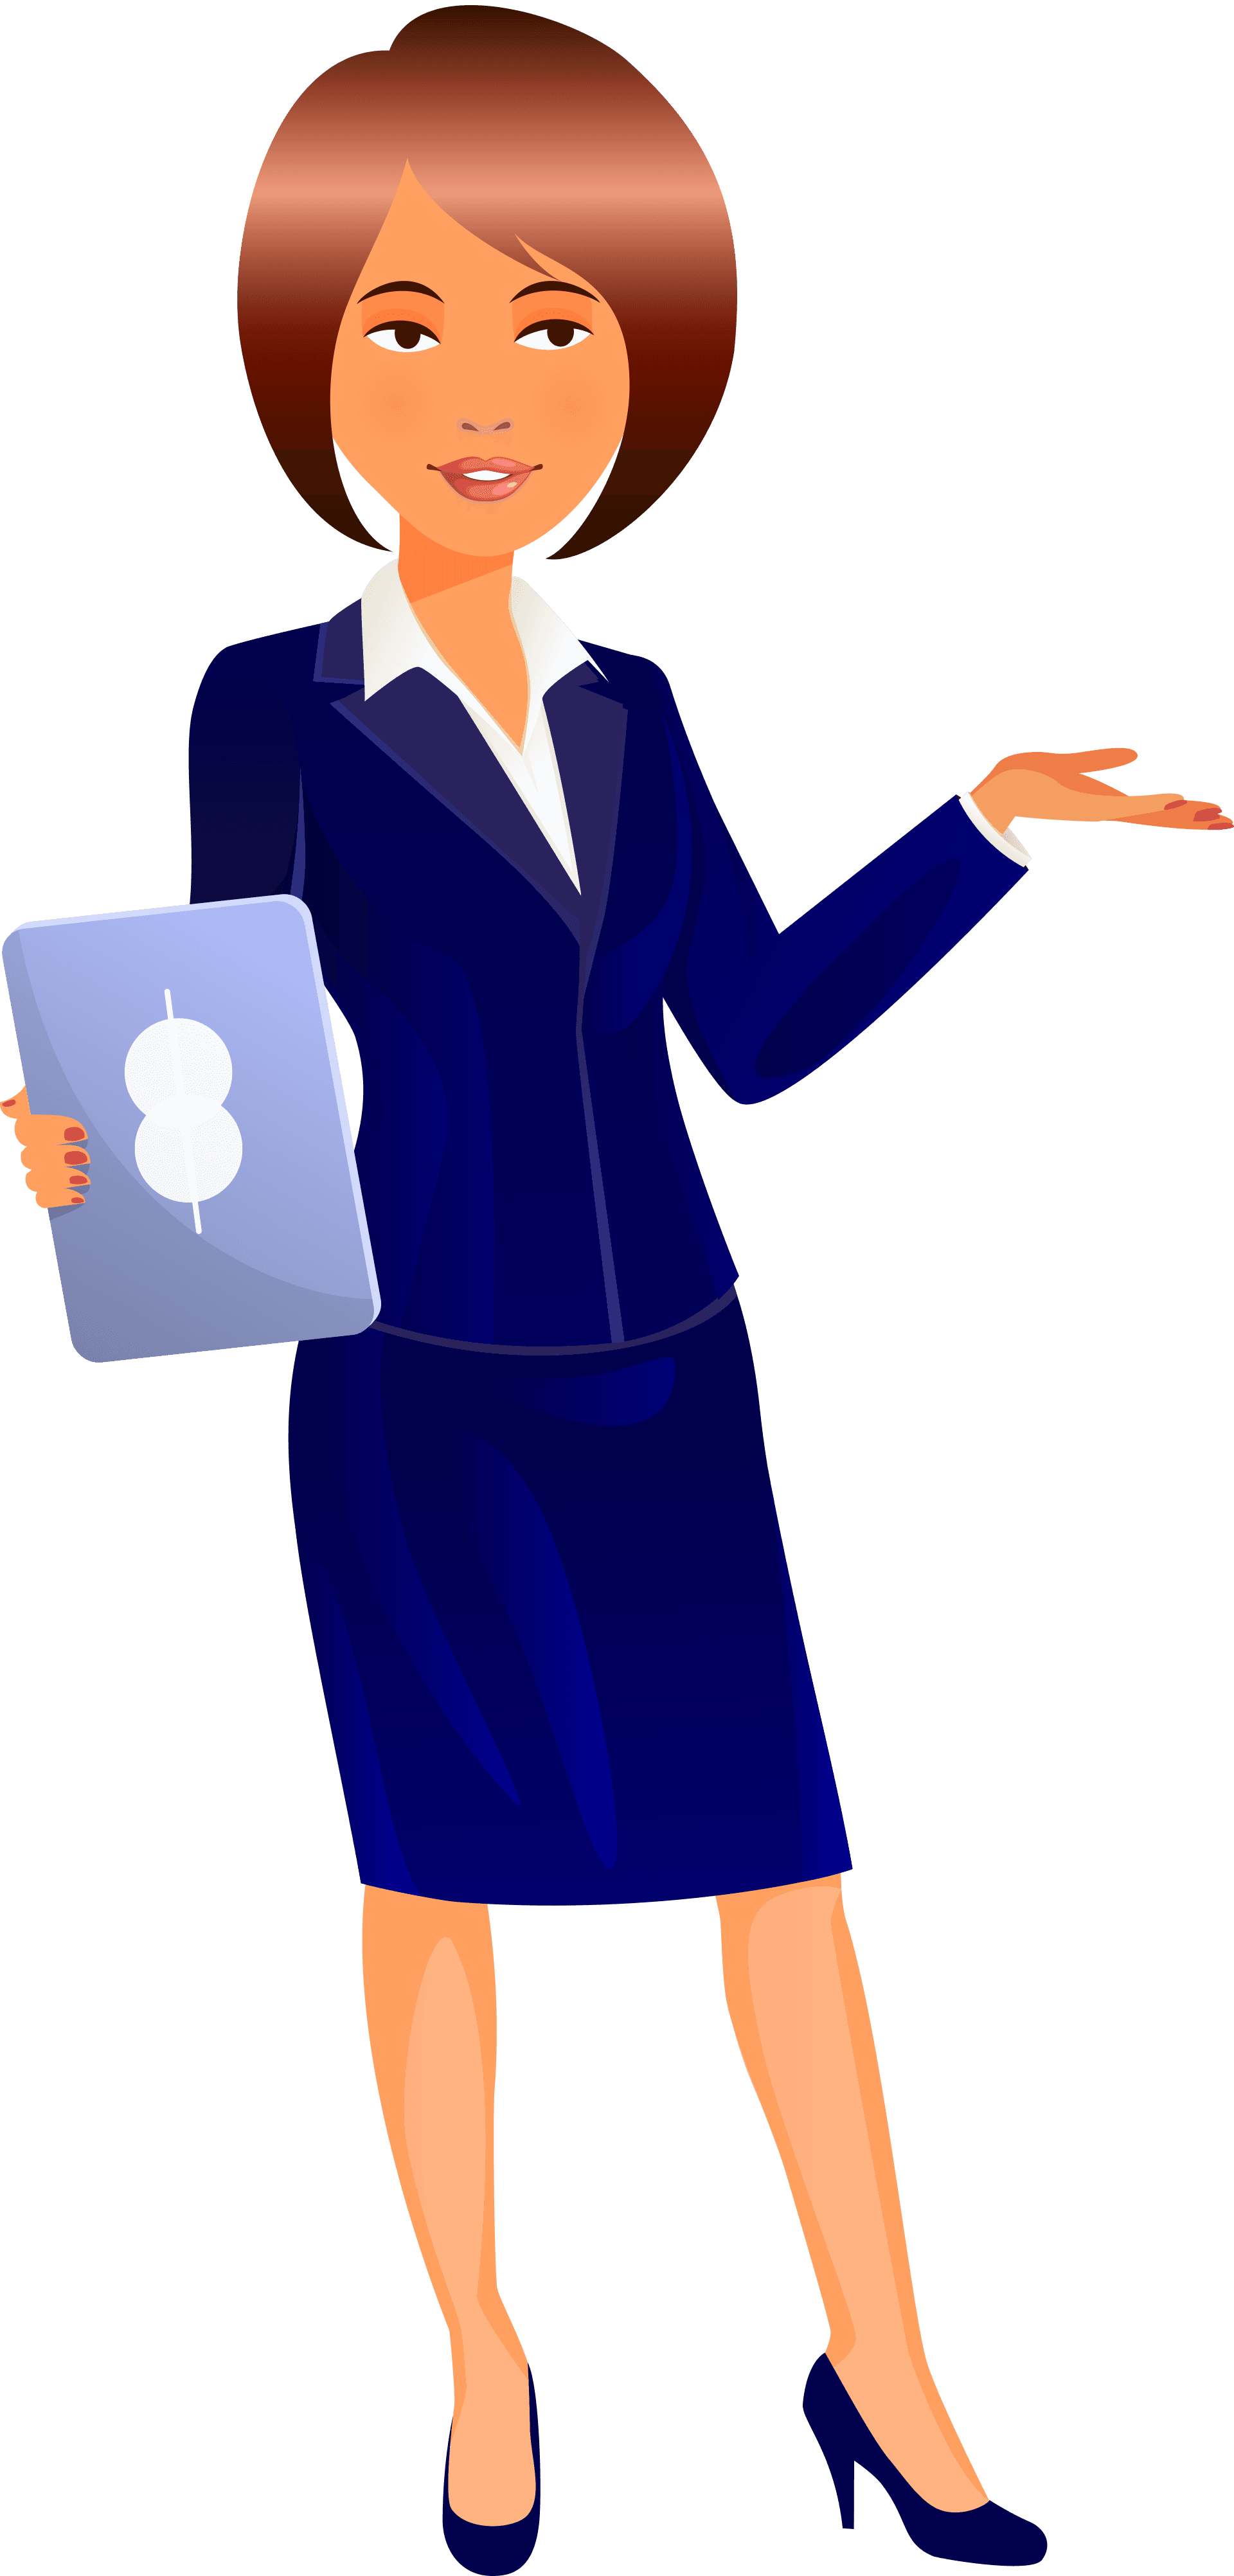 Work From Home Jobs  Guardian Jobs